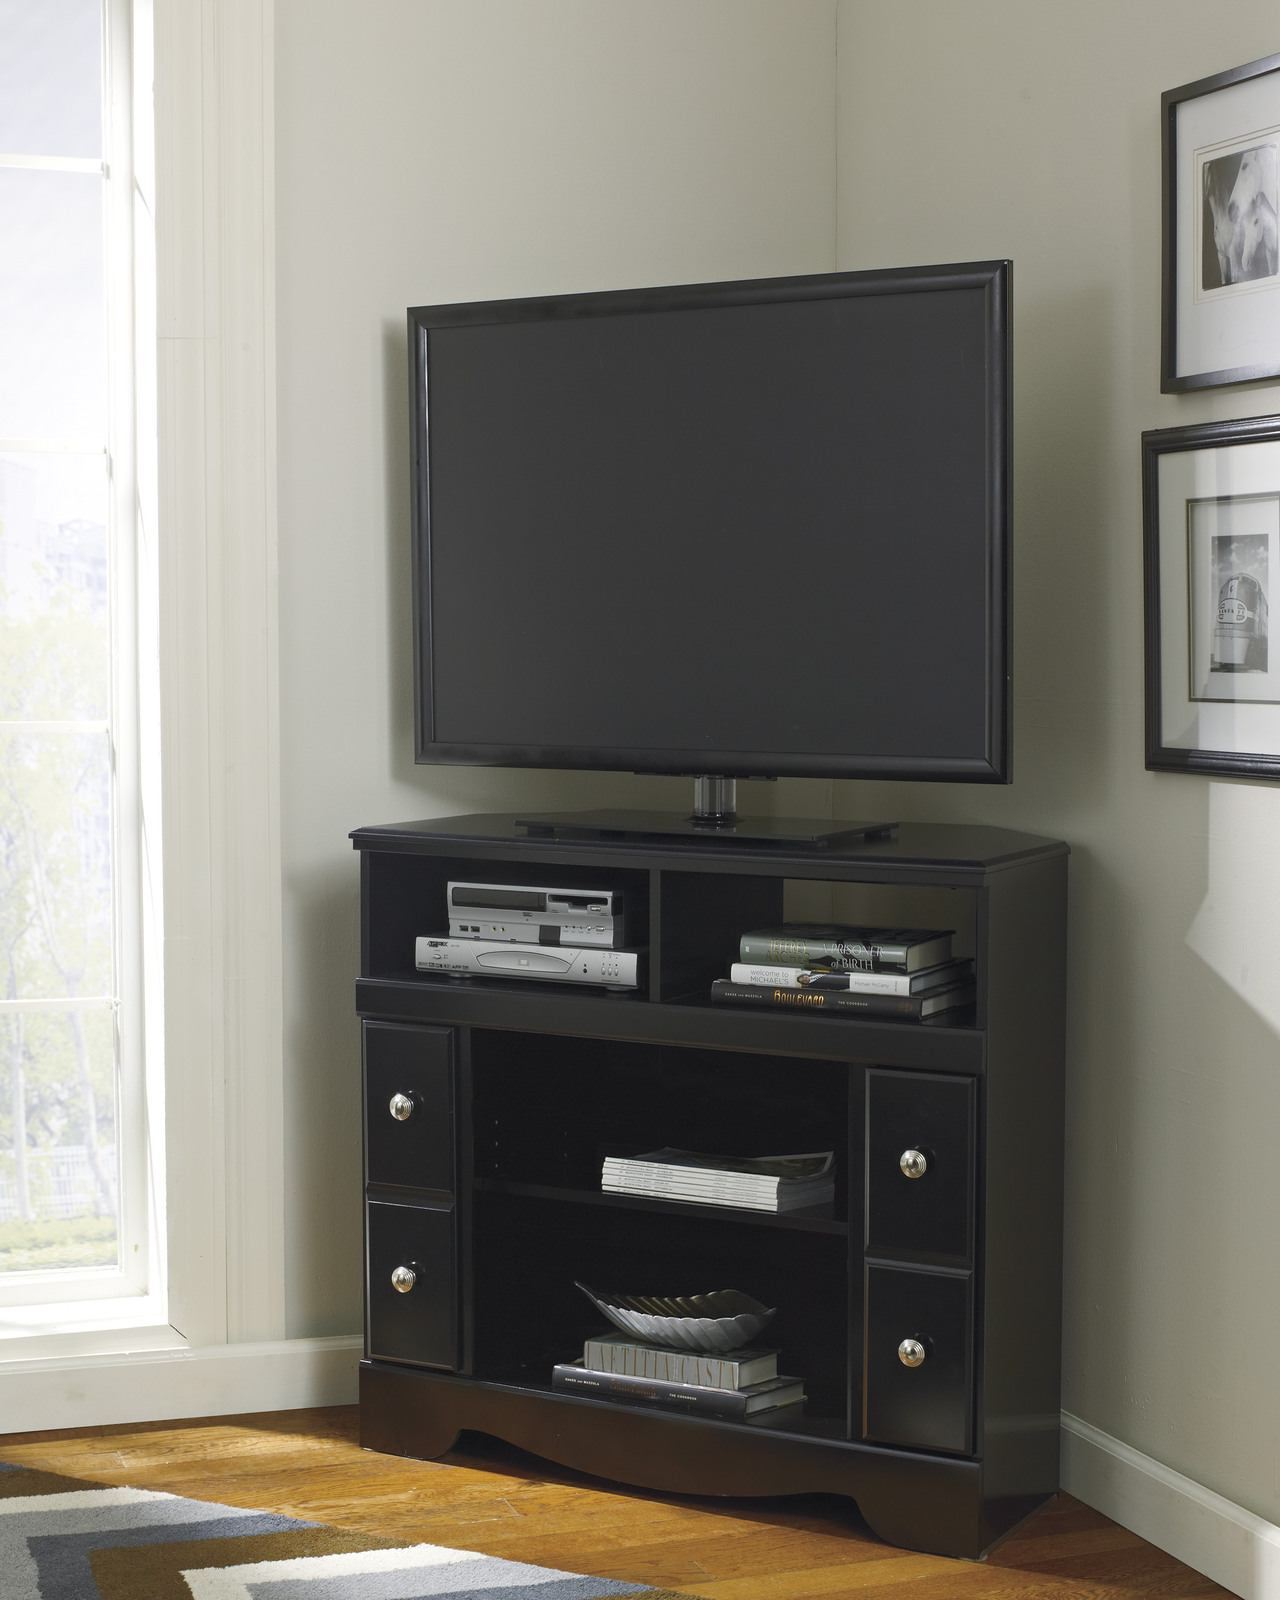 Trendy Modern Tv Stand Design Media Console Cabinet Dark Brown Walmart 65 Intended For Dark Brown Corner Tv Stands (View 11 of 20)